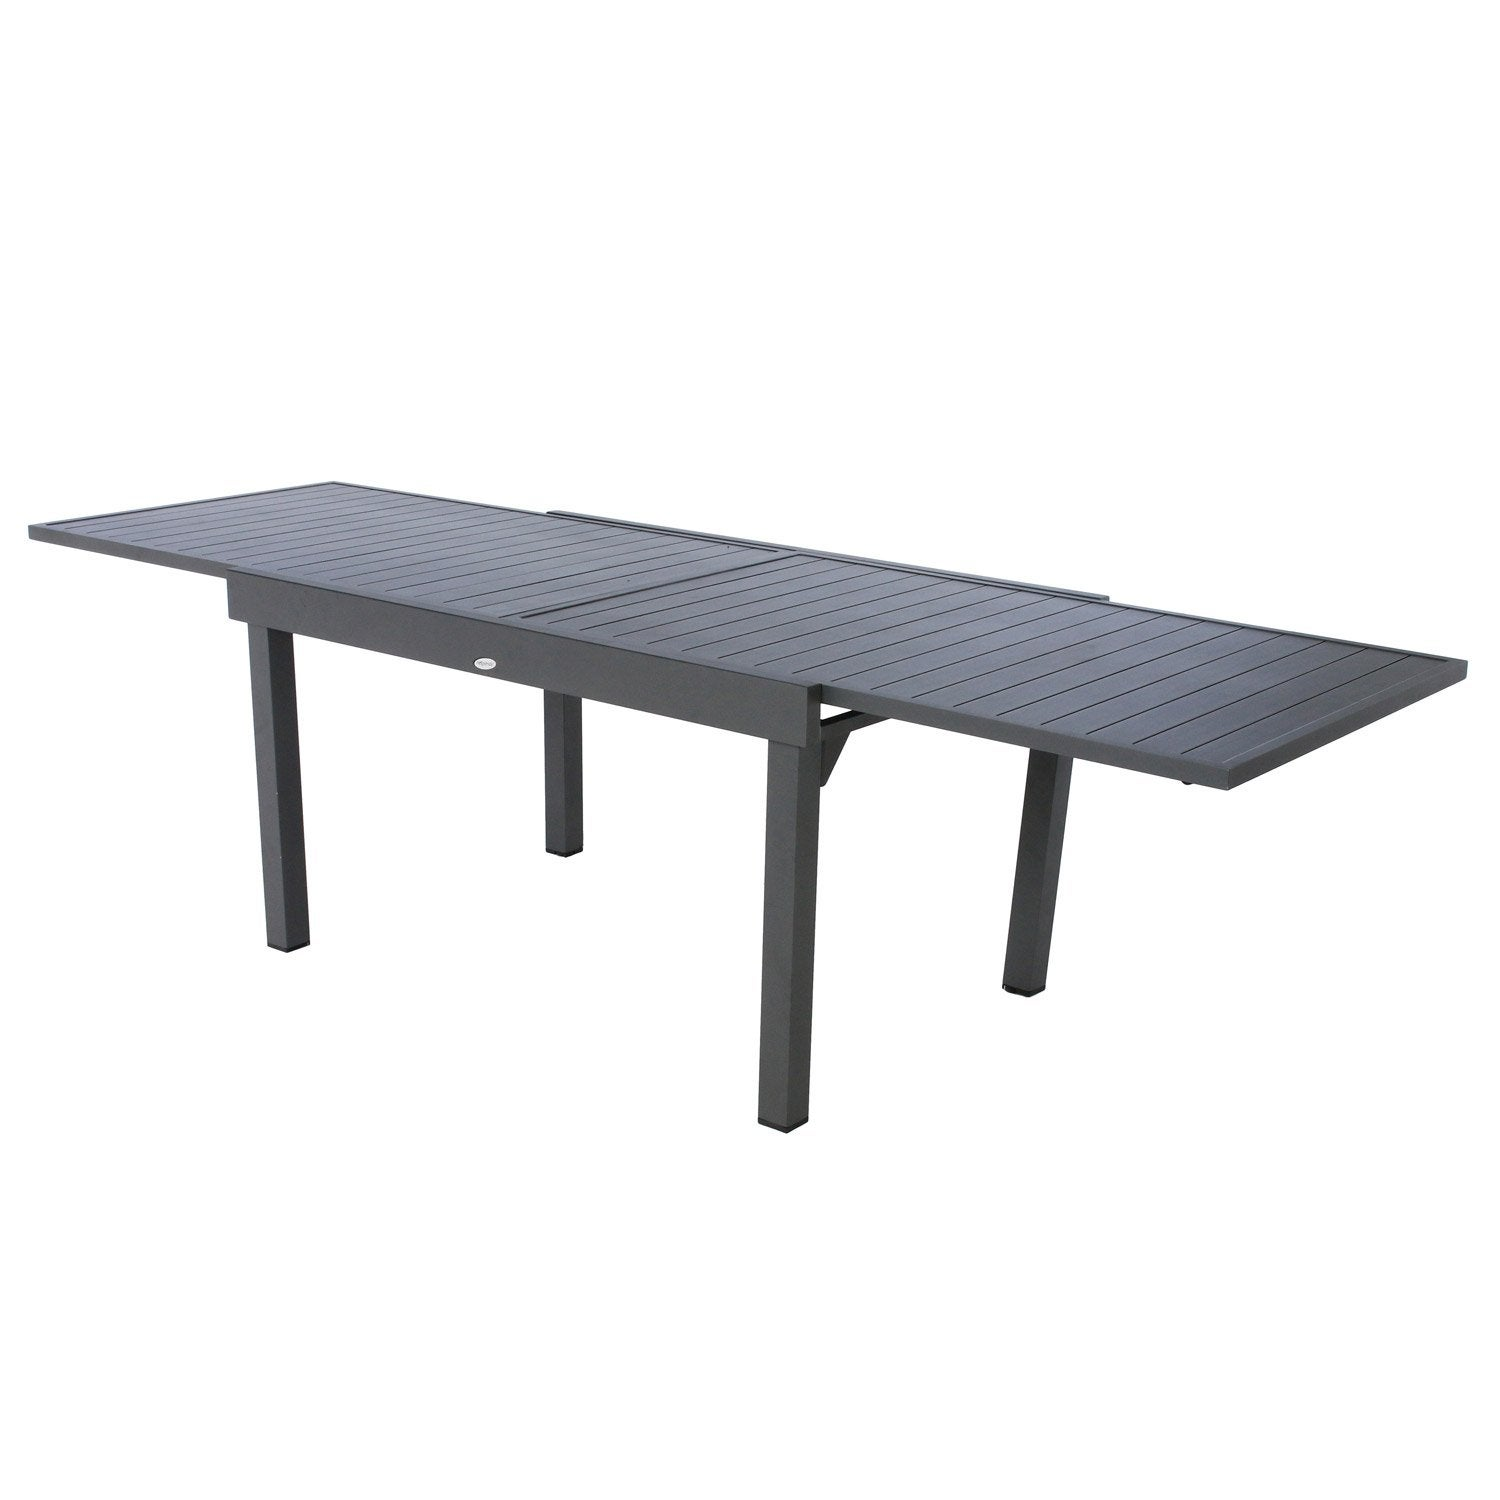 table de jardin hesperide piazza rectangulaire gris 10 personnes leroy merlin. Black Bedroom Furniture Sets. Home Design Ideas